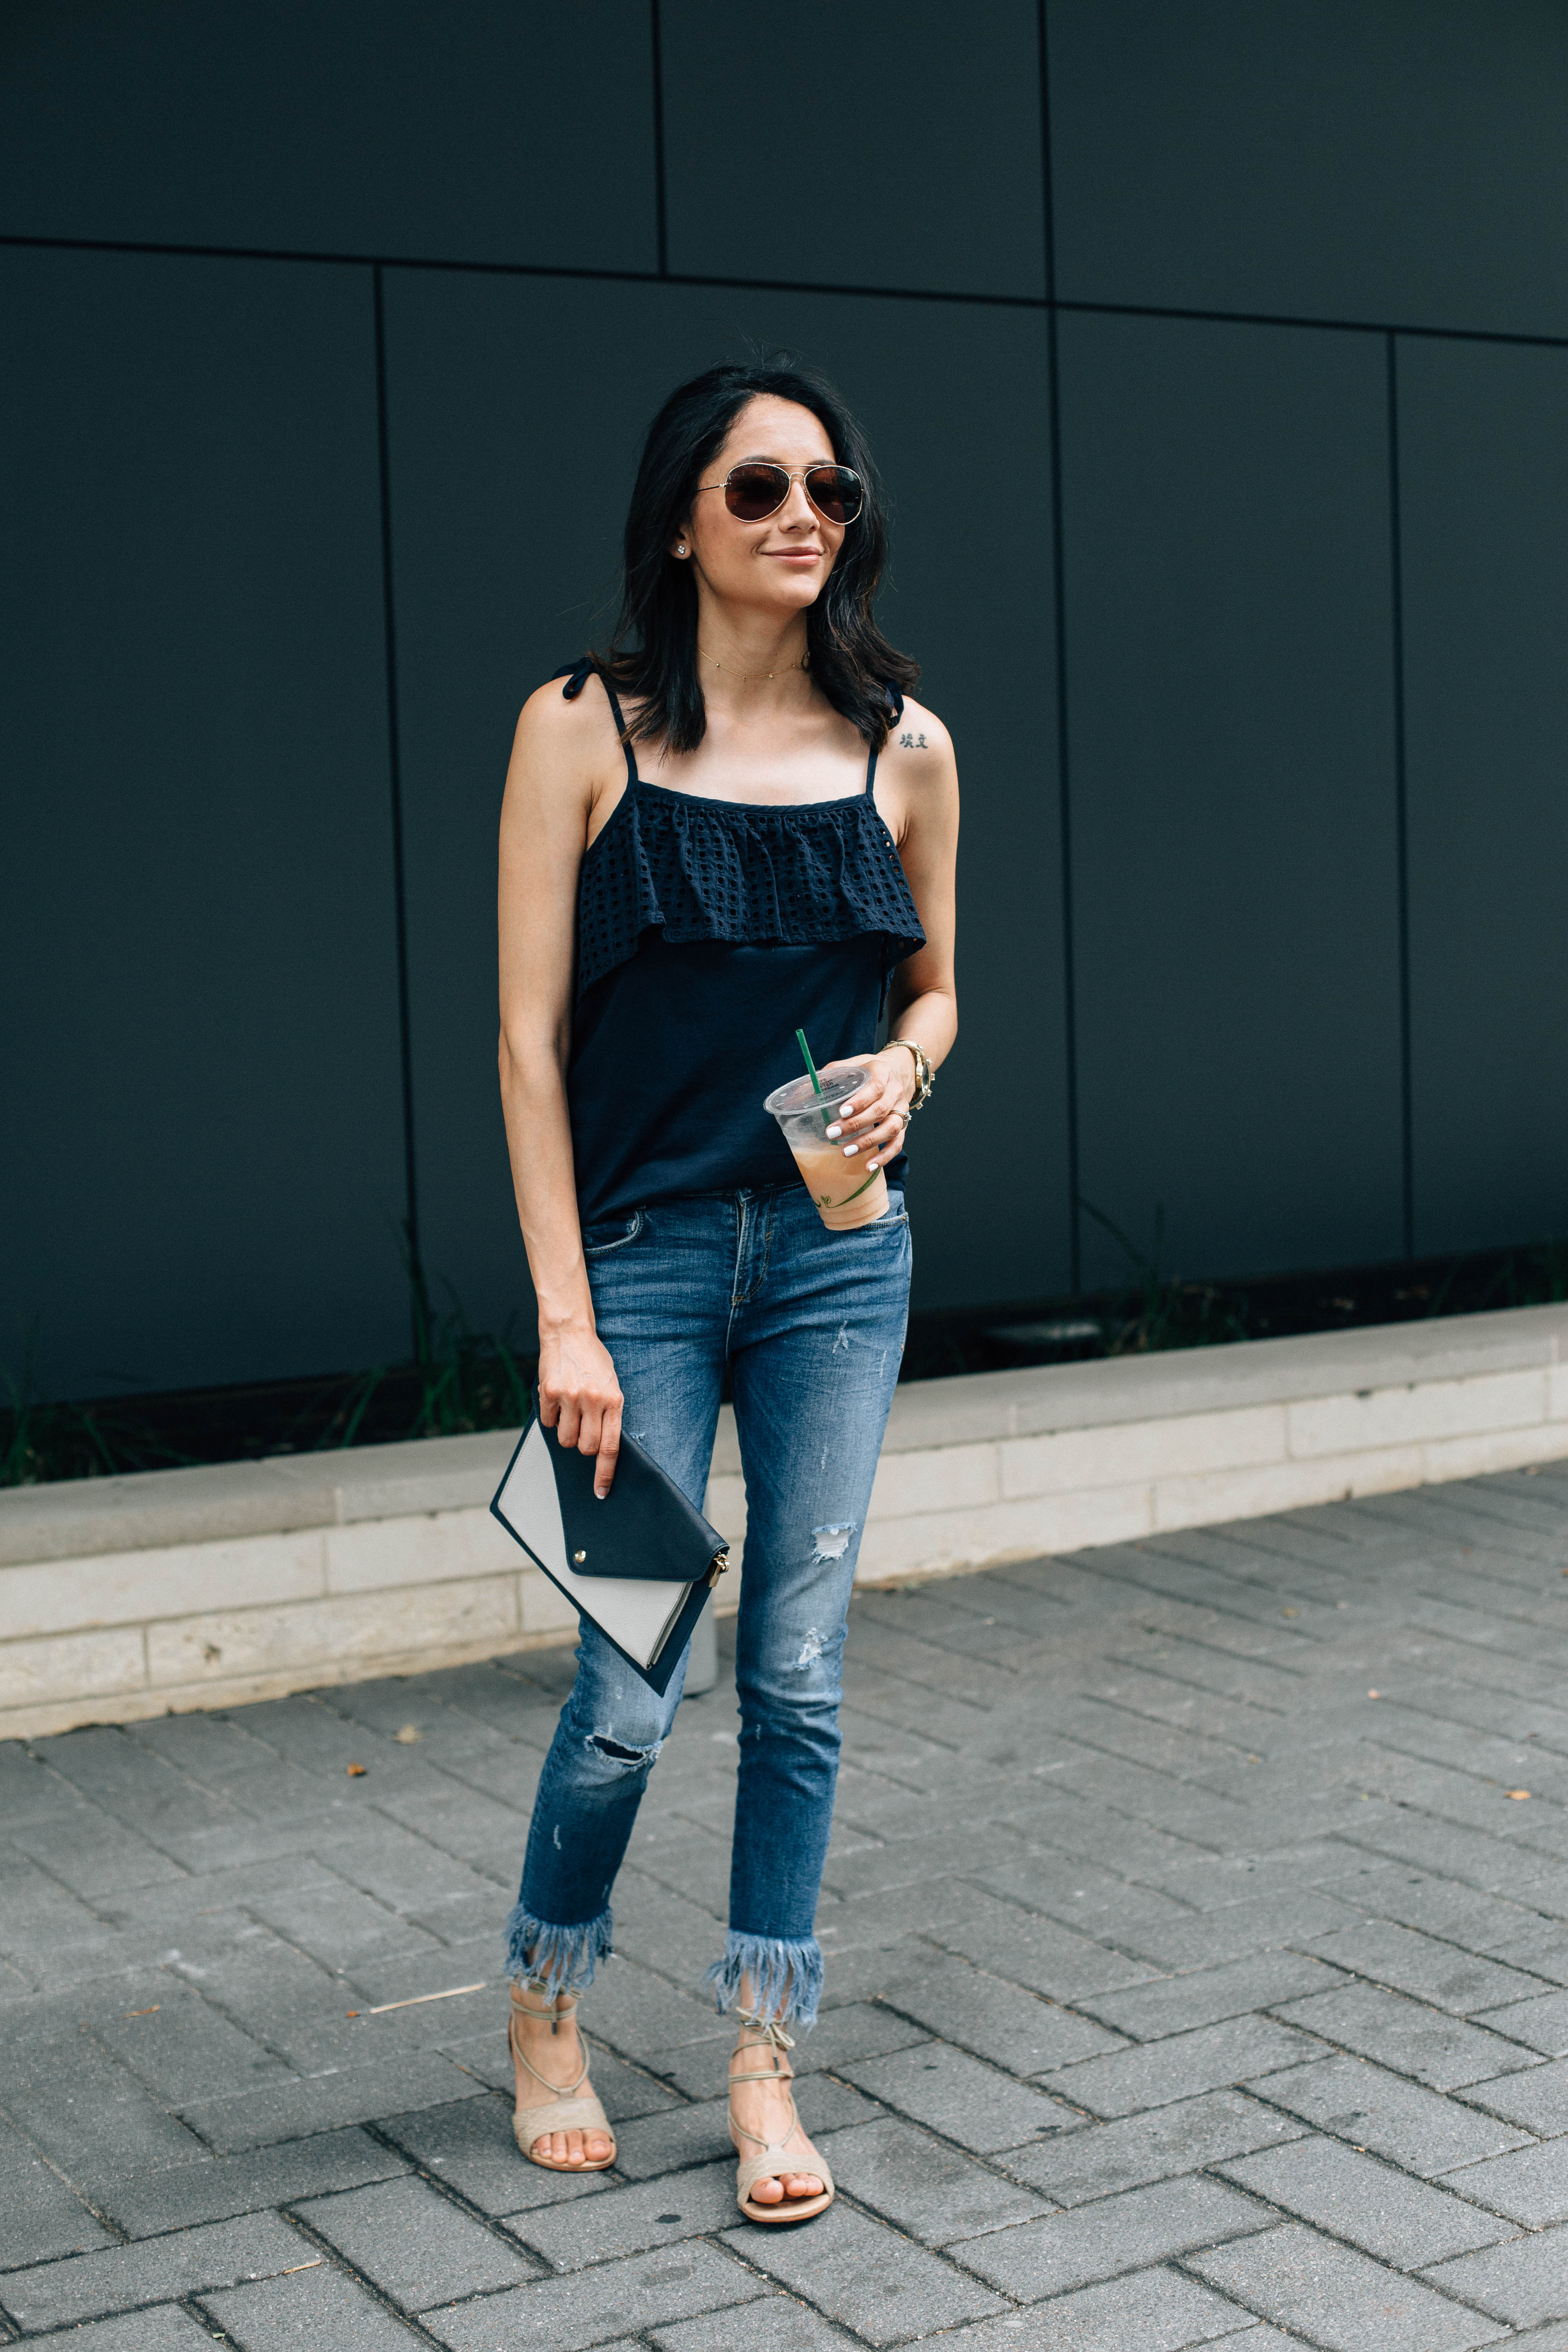 Lilly Beltran of Daily Craving wearing a navy eyelet top and denim jeans